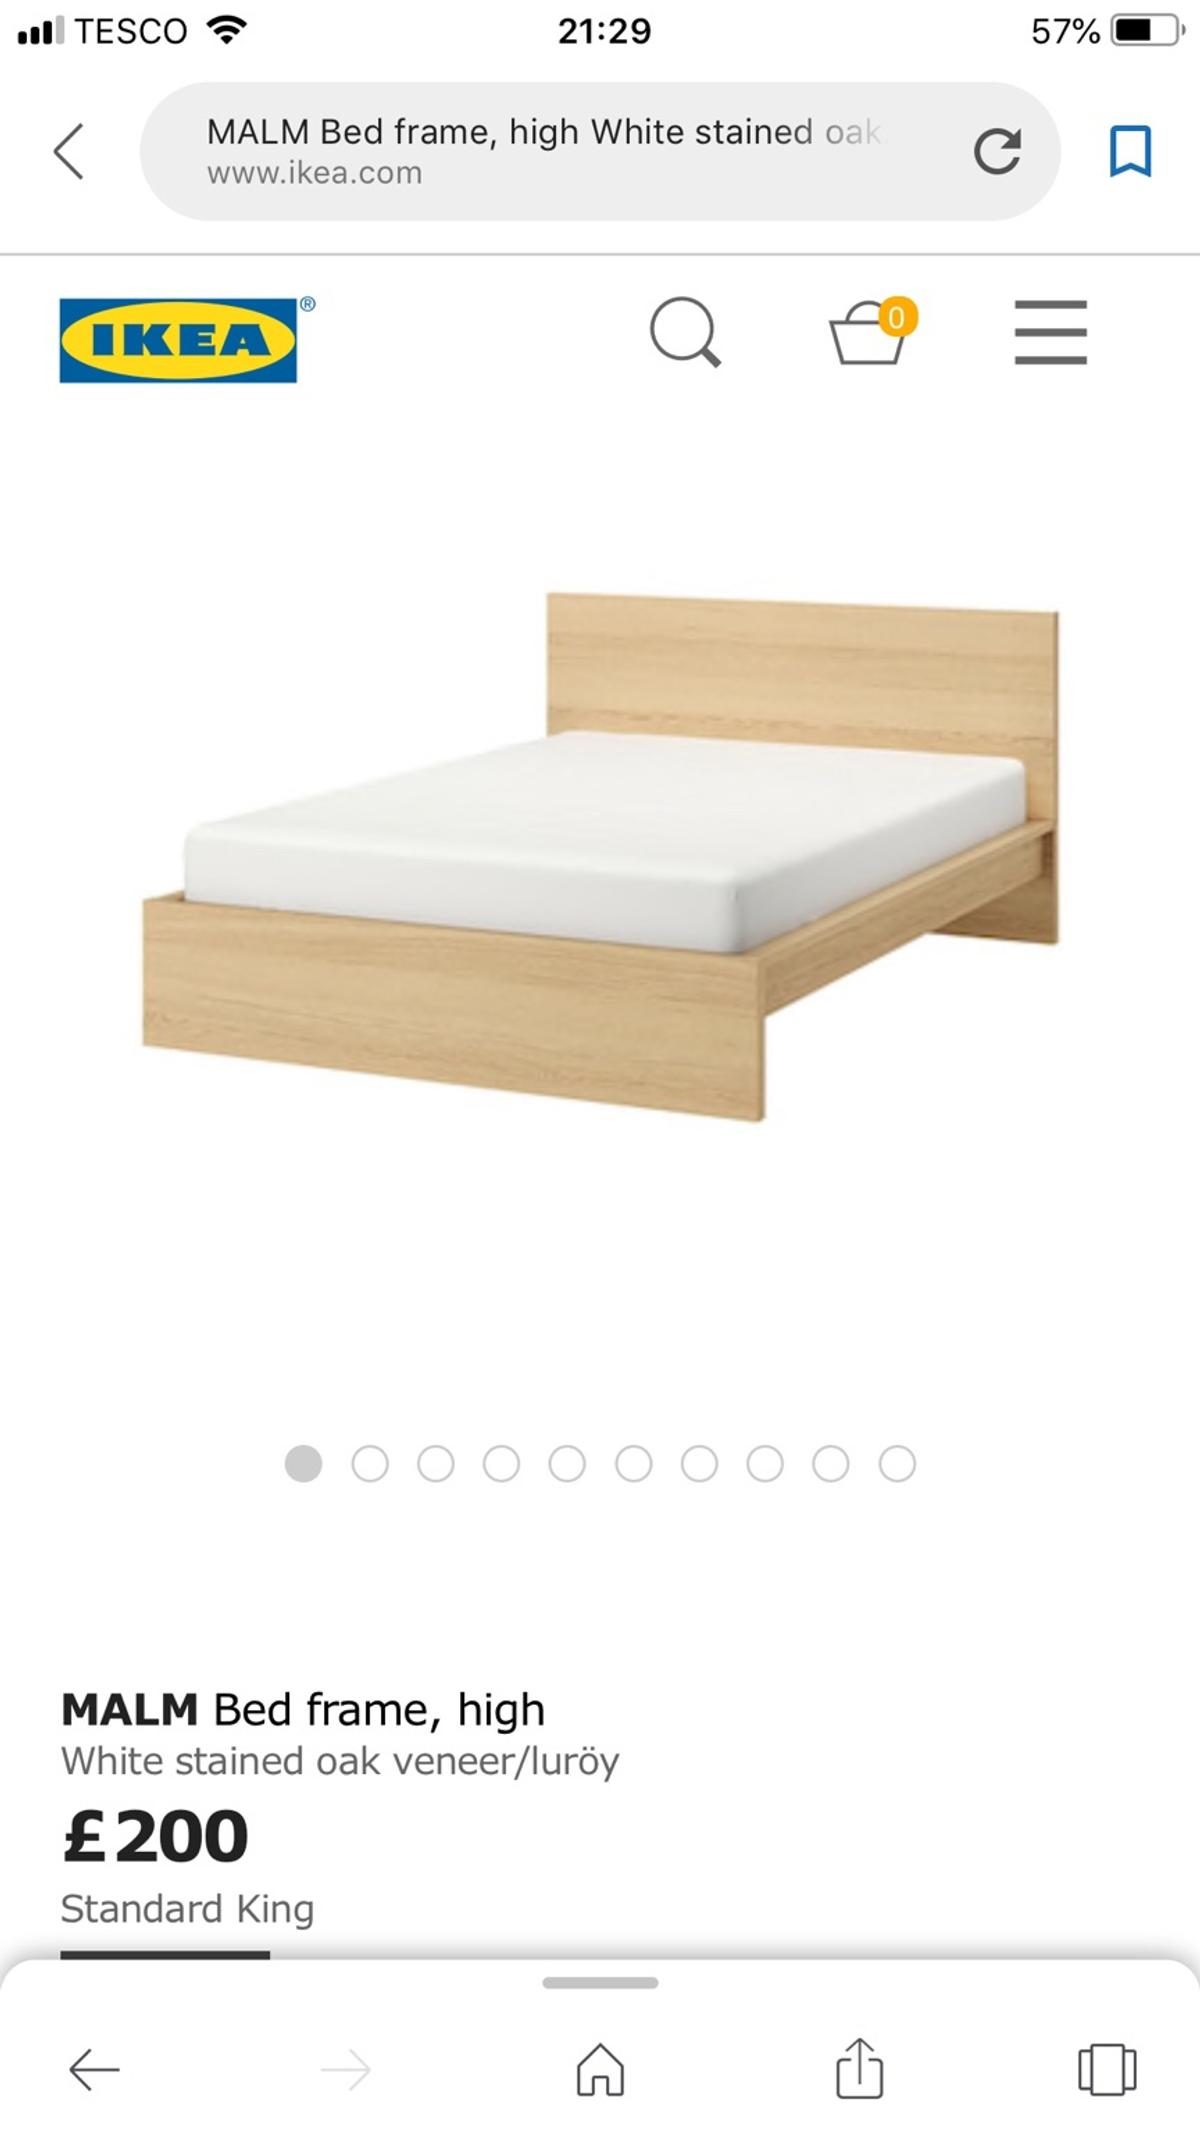 Ikea King Size Bed Frame Malm Code 10973 In E17 London For 85 00 For Sale Shpock